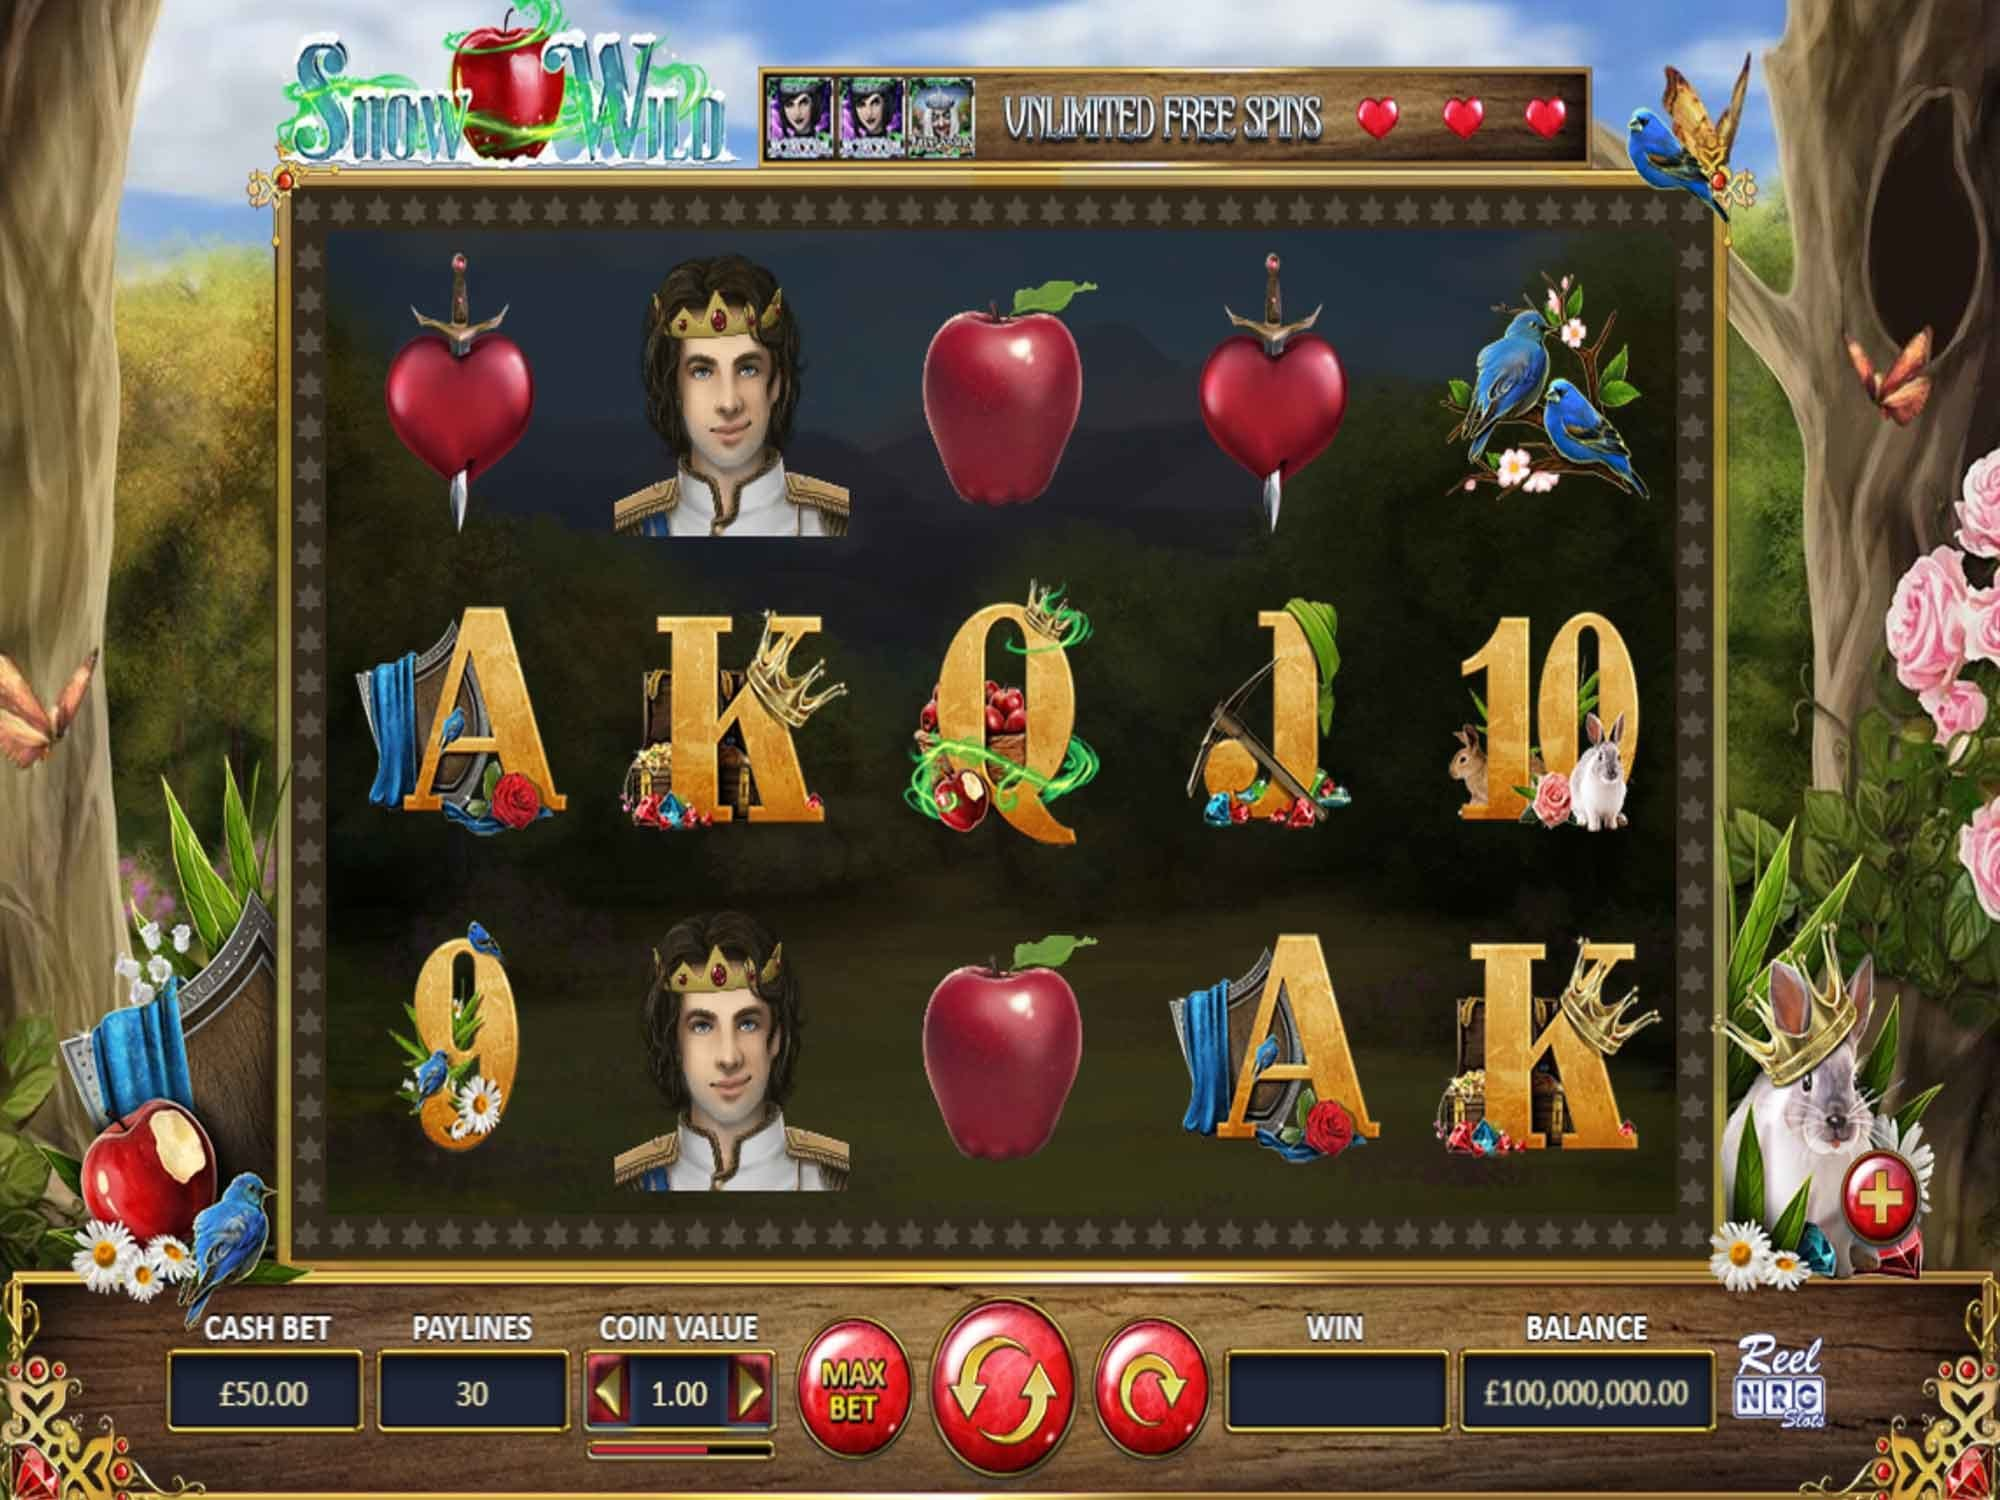 Snow Wild Slot Game